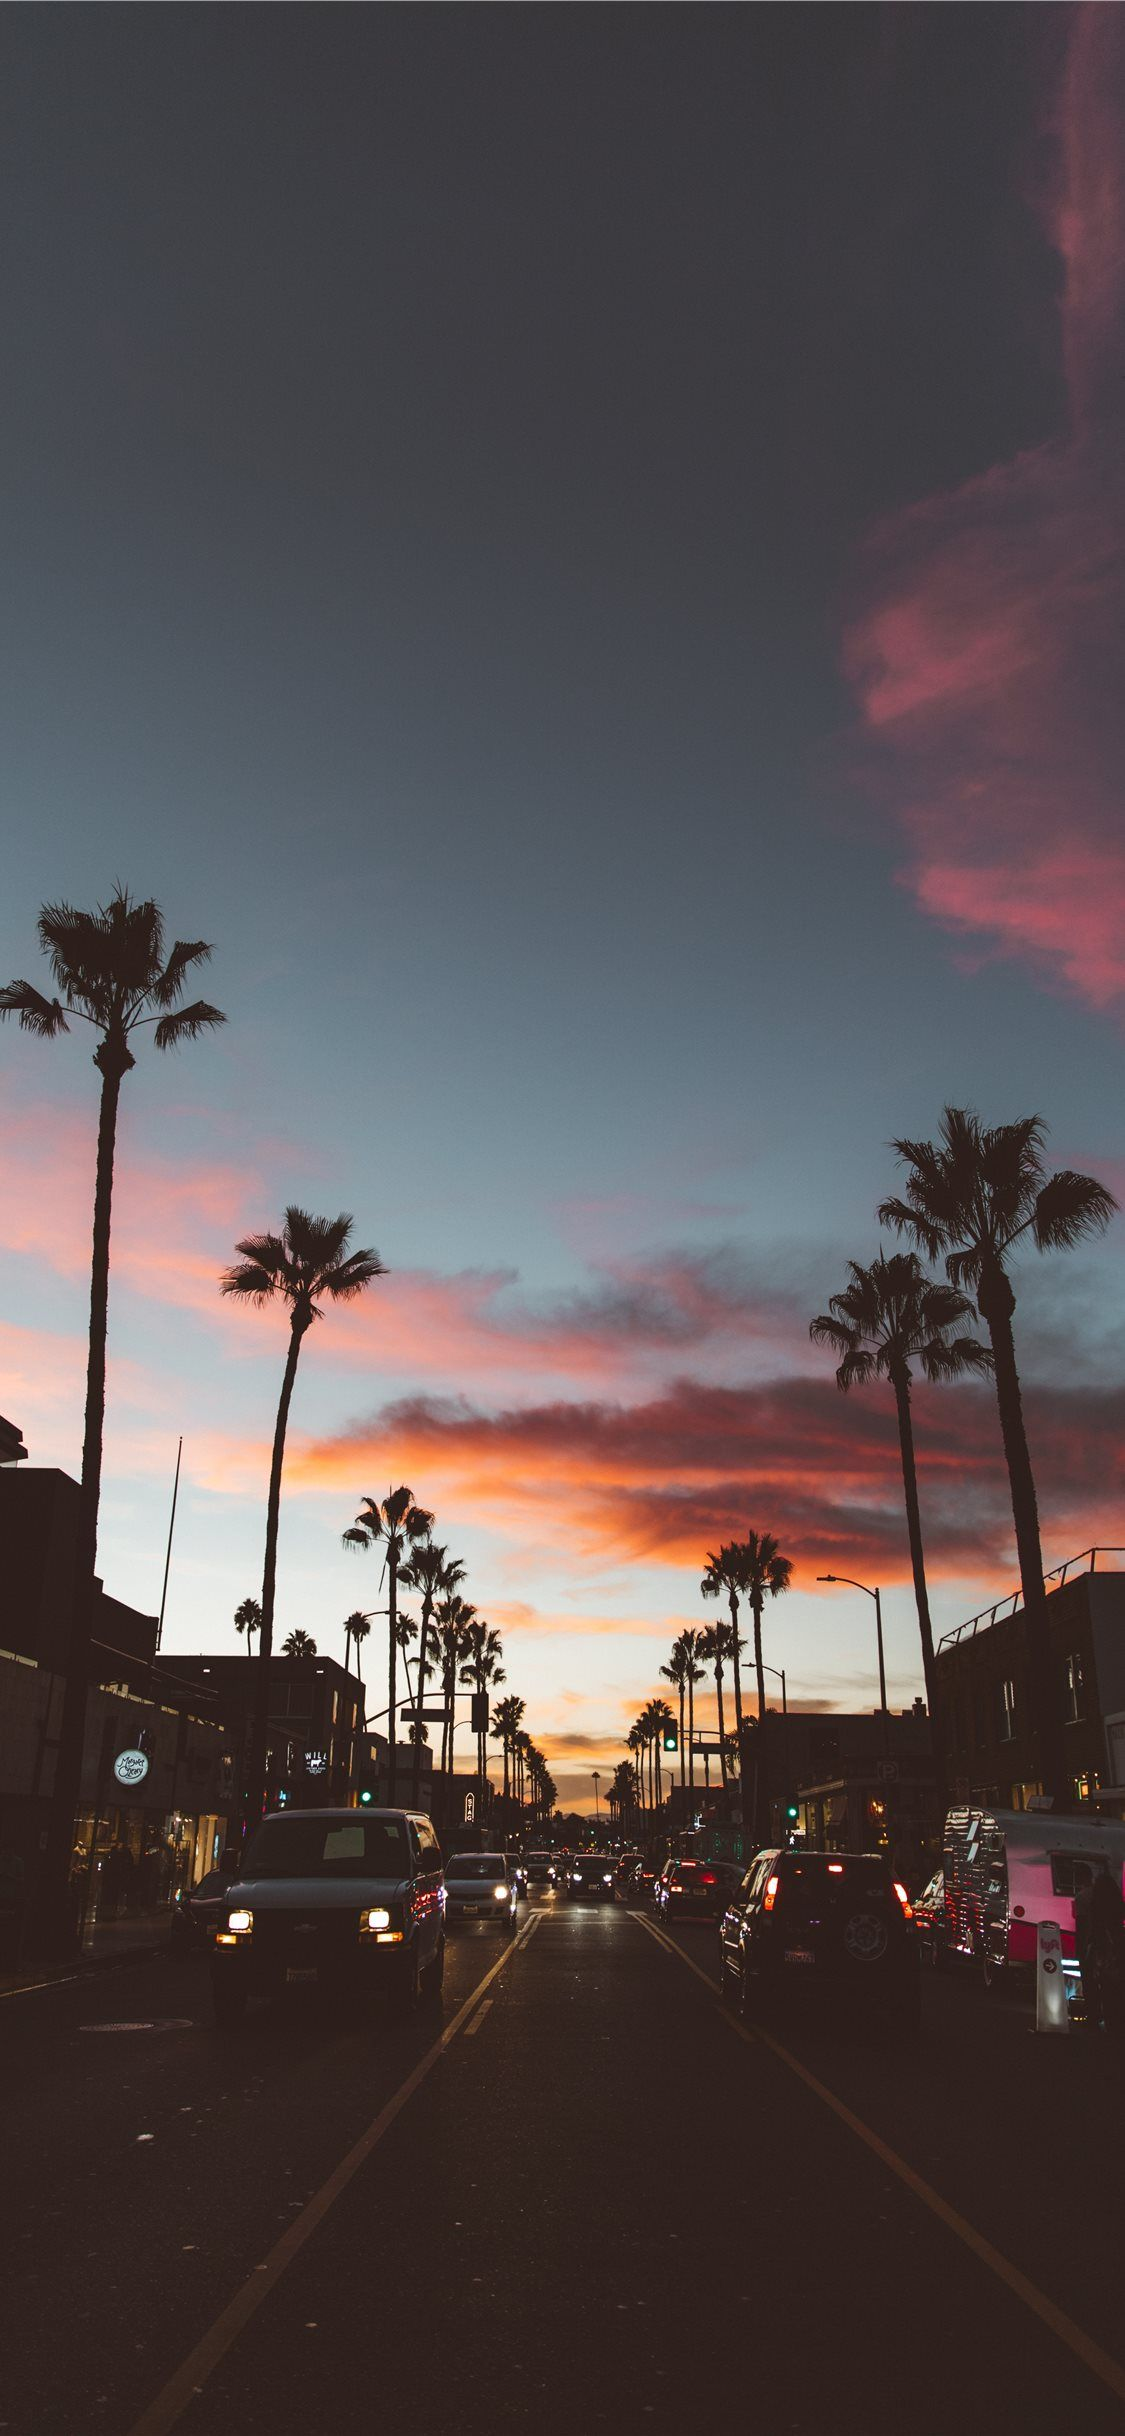 Free Download The Abbot Kinney Wallpaper Beaty Your Phone La Urban Los Angeles Palm Tree Aesthetic Iphone Wallpaper Aesthetic Wallpapers City Wallpaper